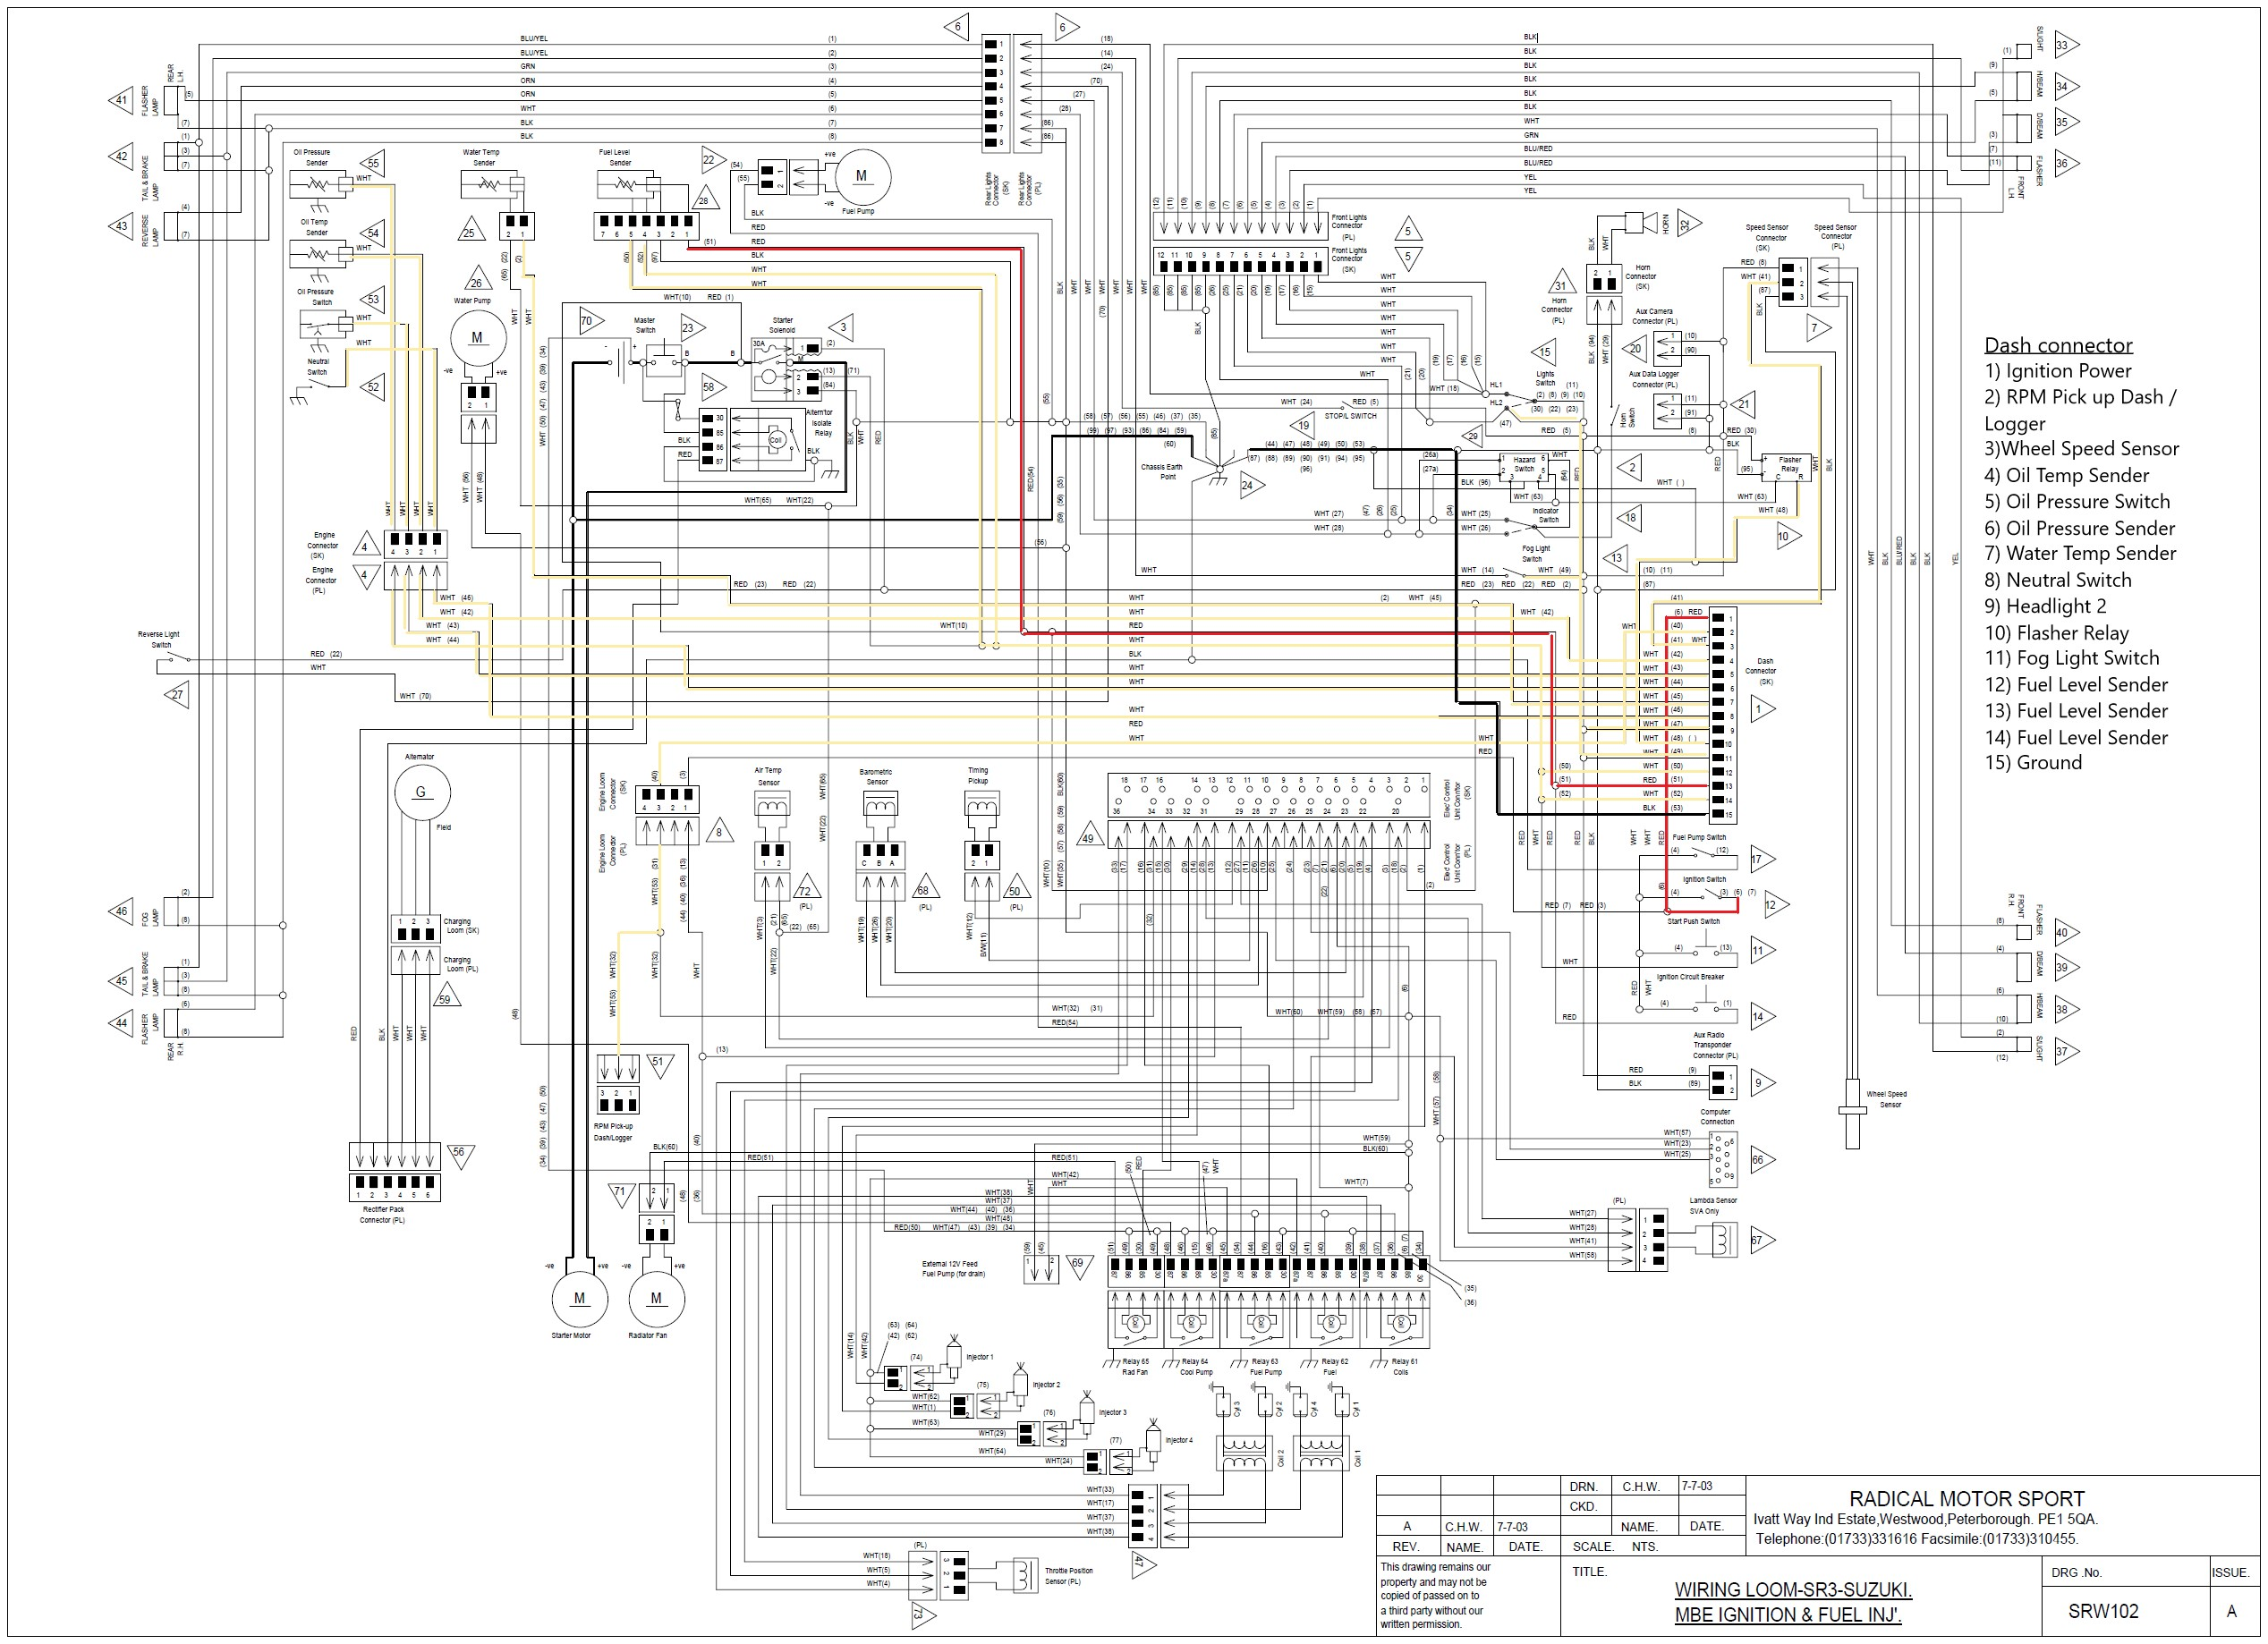 Wiring diagram of the Radical Dash Connector